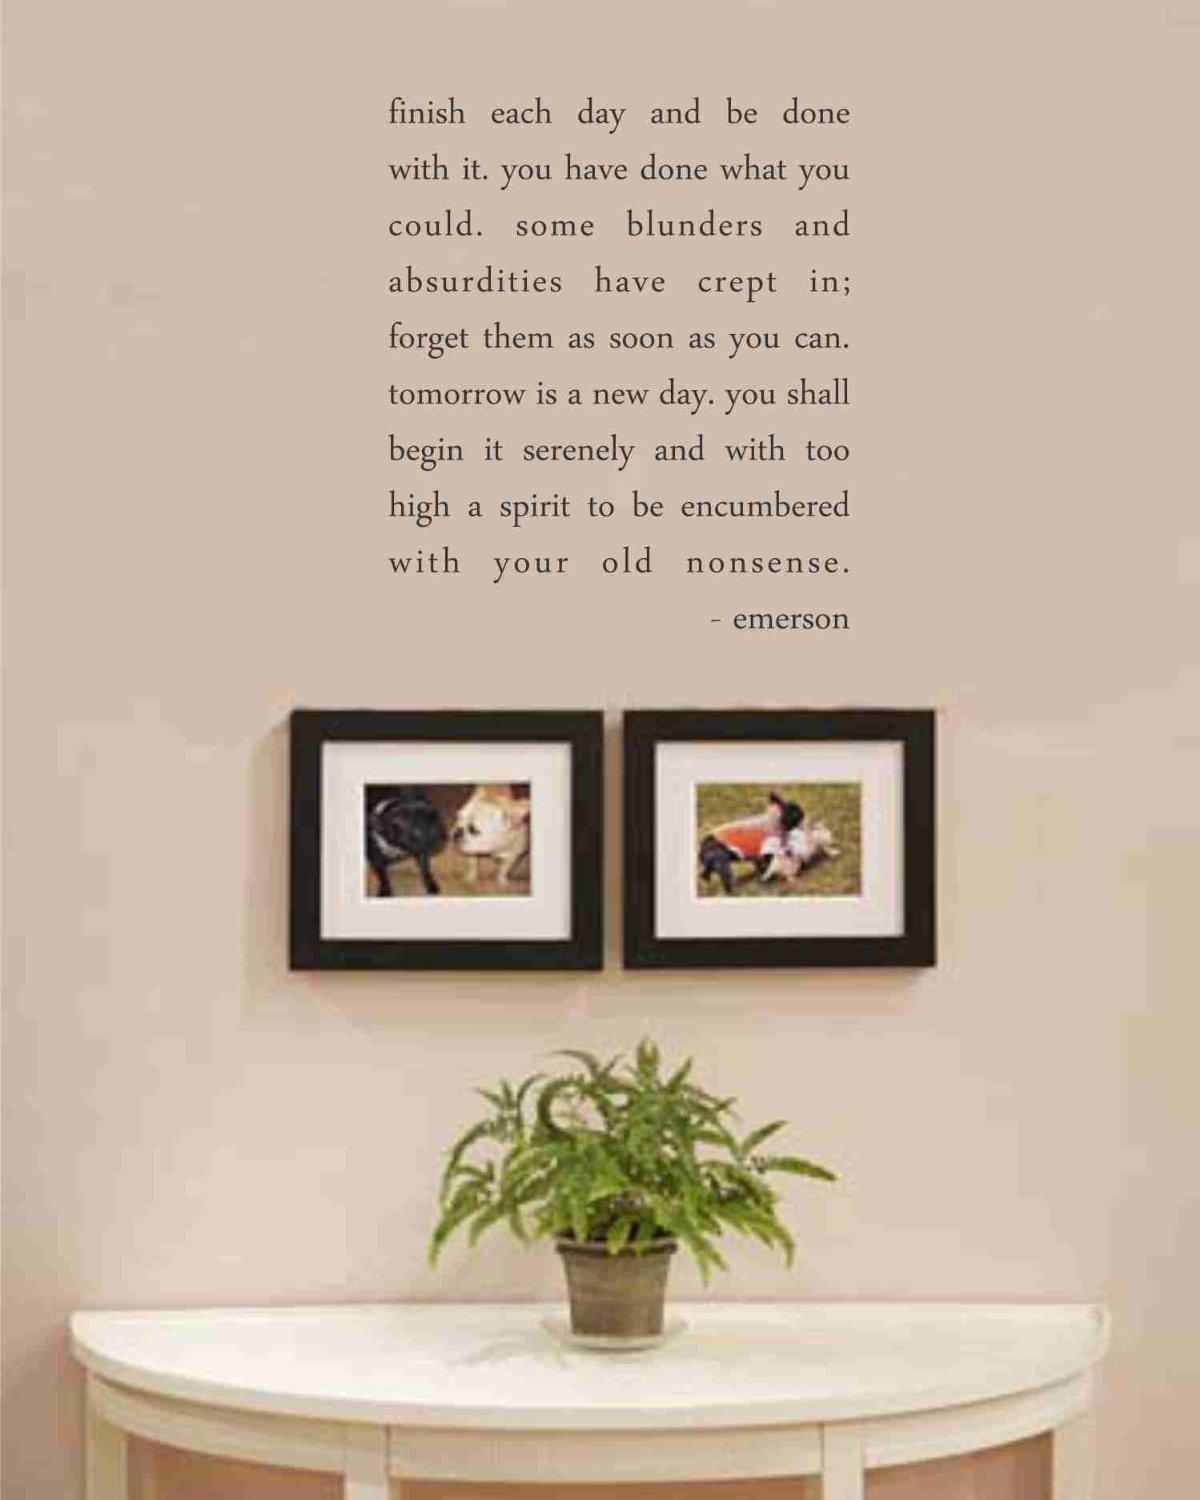 Finish each day and be done with it wall decal